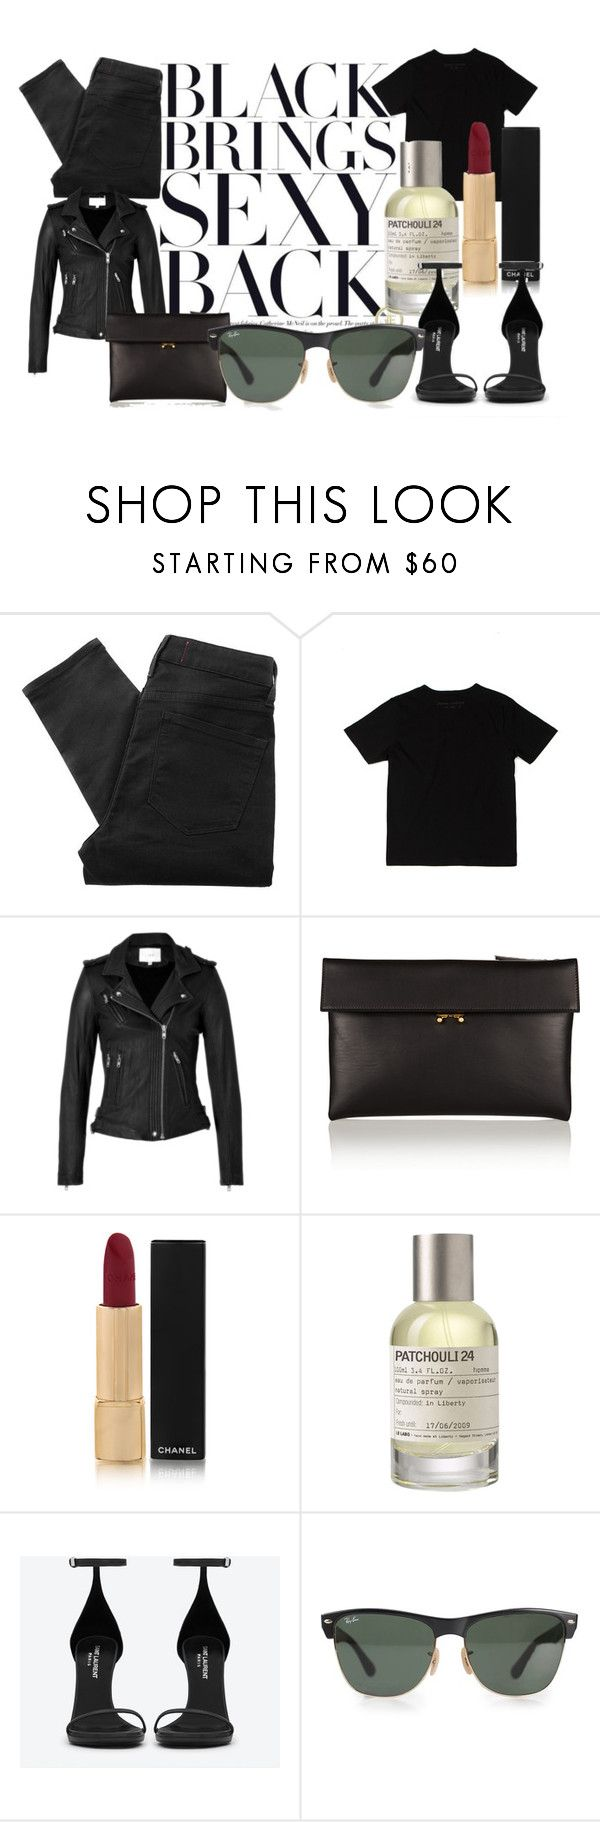 Black brings sexy back by sally-w on Polyvore featuring Opening Ceremony, IRO, Marc by Marc Jacobs, Yves Saint Laurent, Marni, Ray-Ban, Chanel, Le Labo, women's clothing and women's fashion